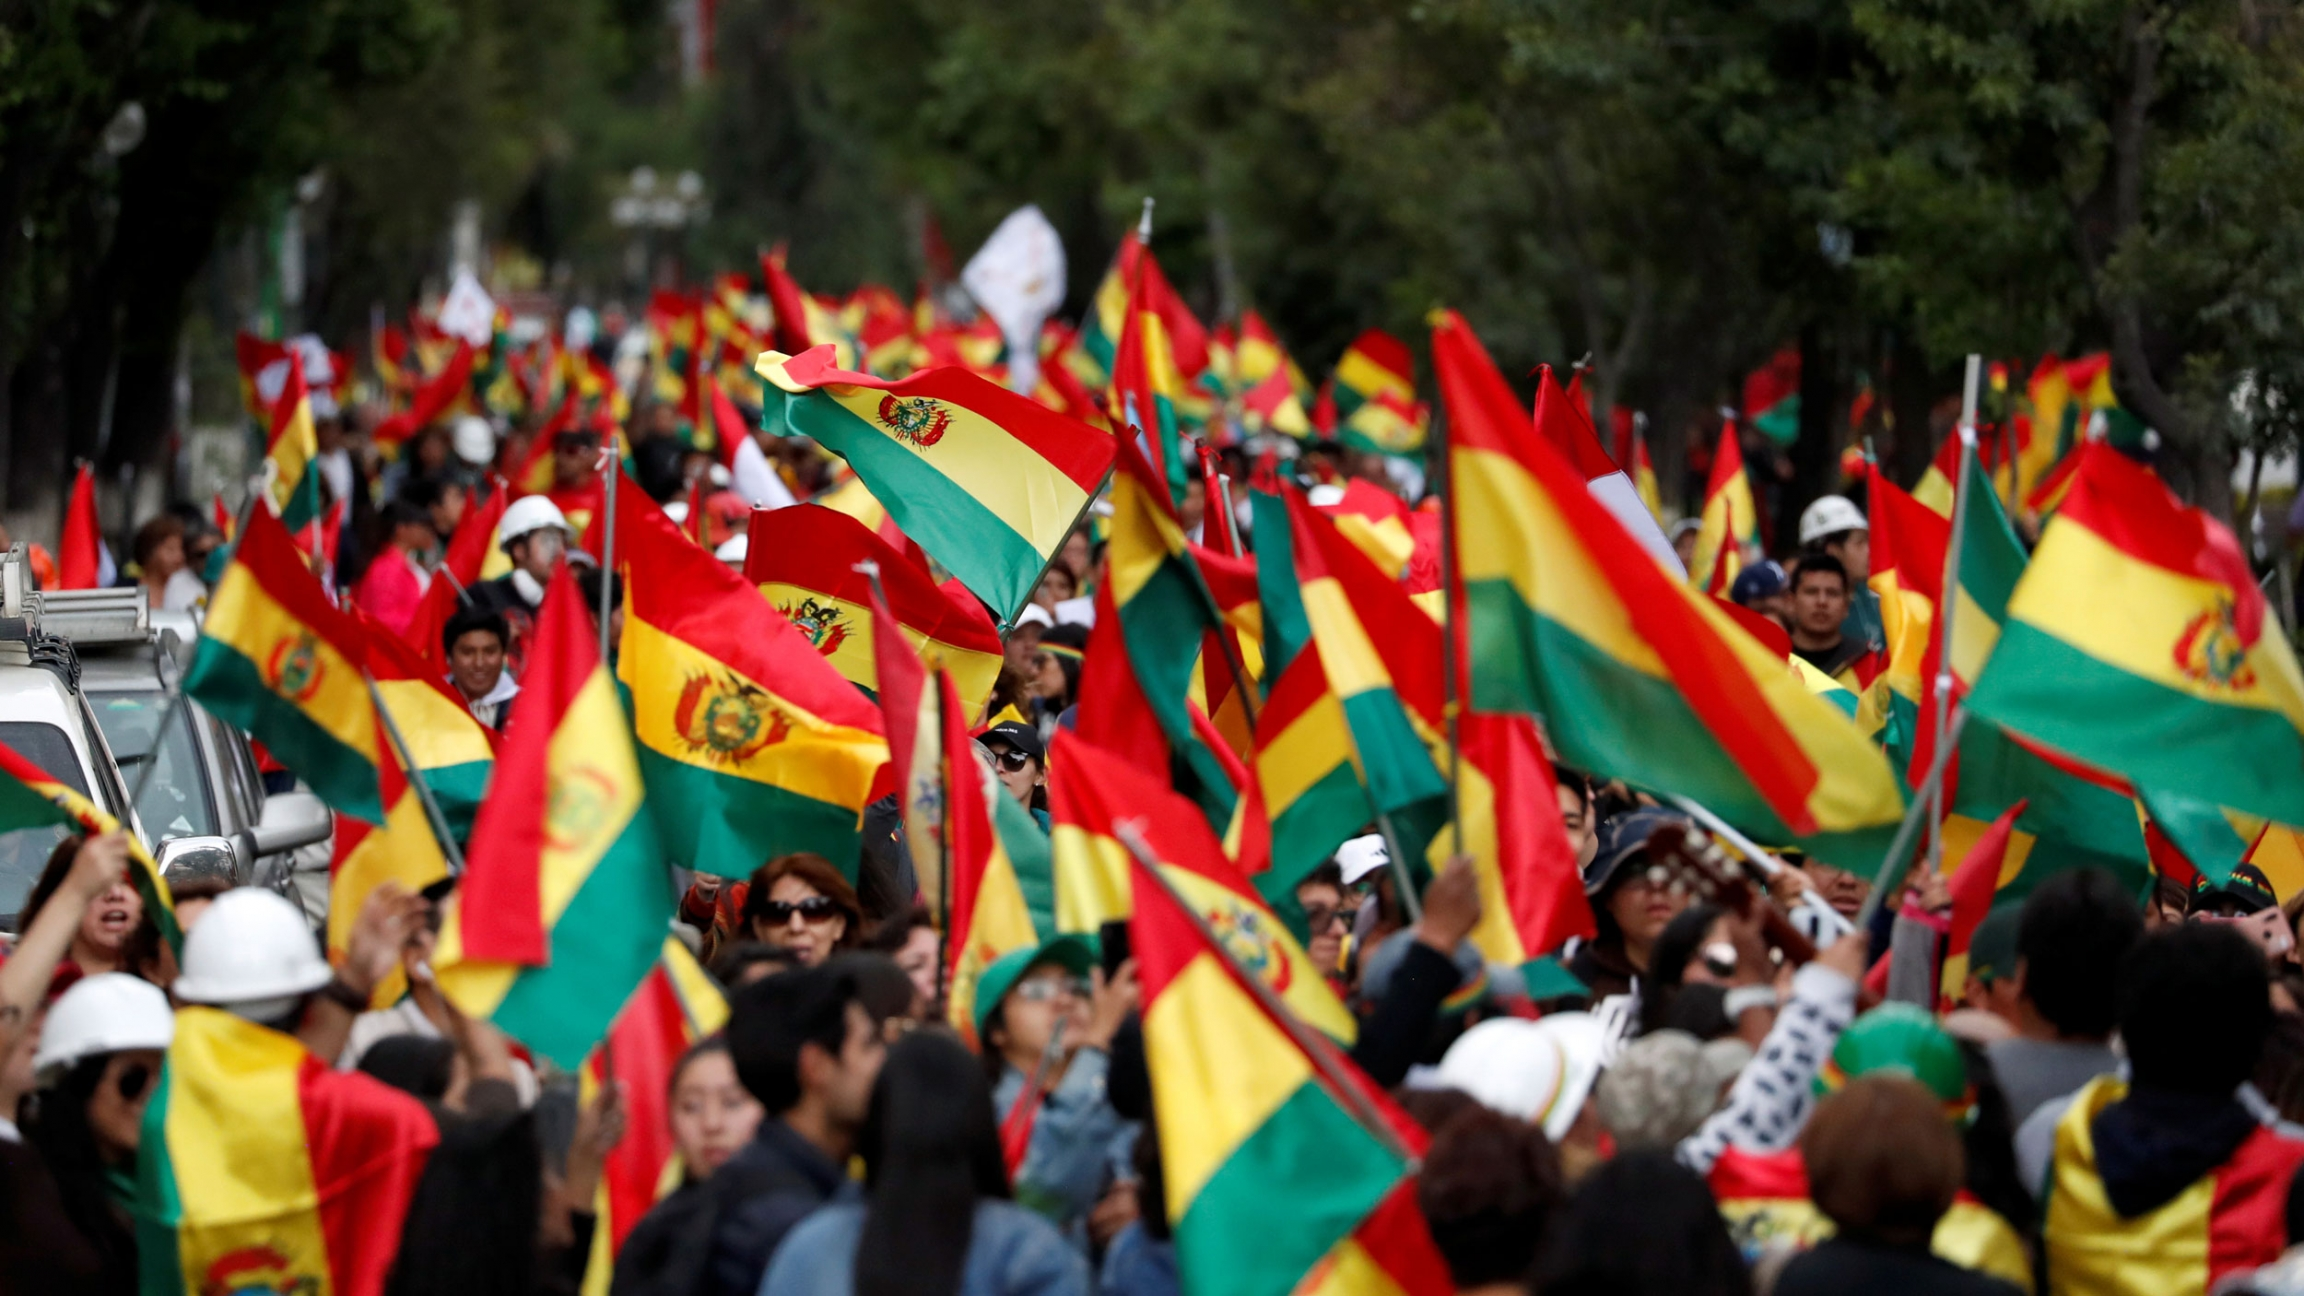 Protesters hold Bolivian flags above their heads as they pack a street